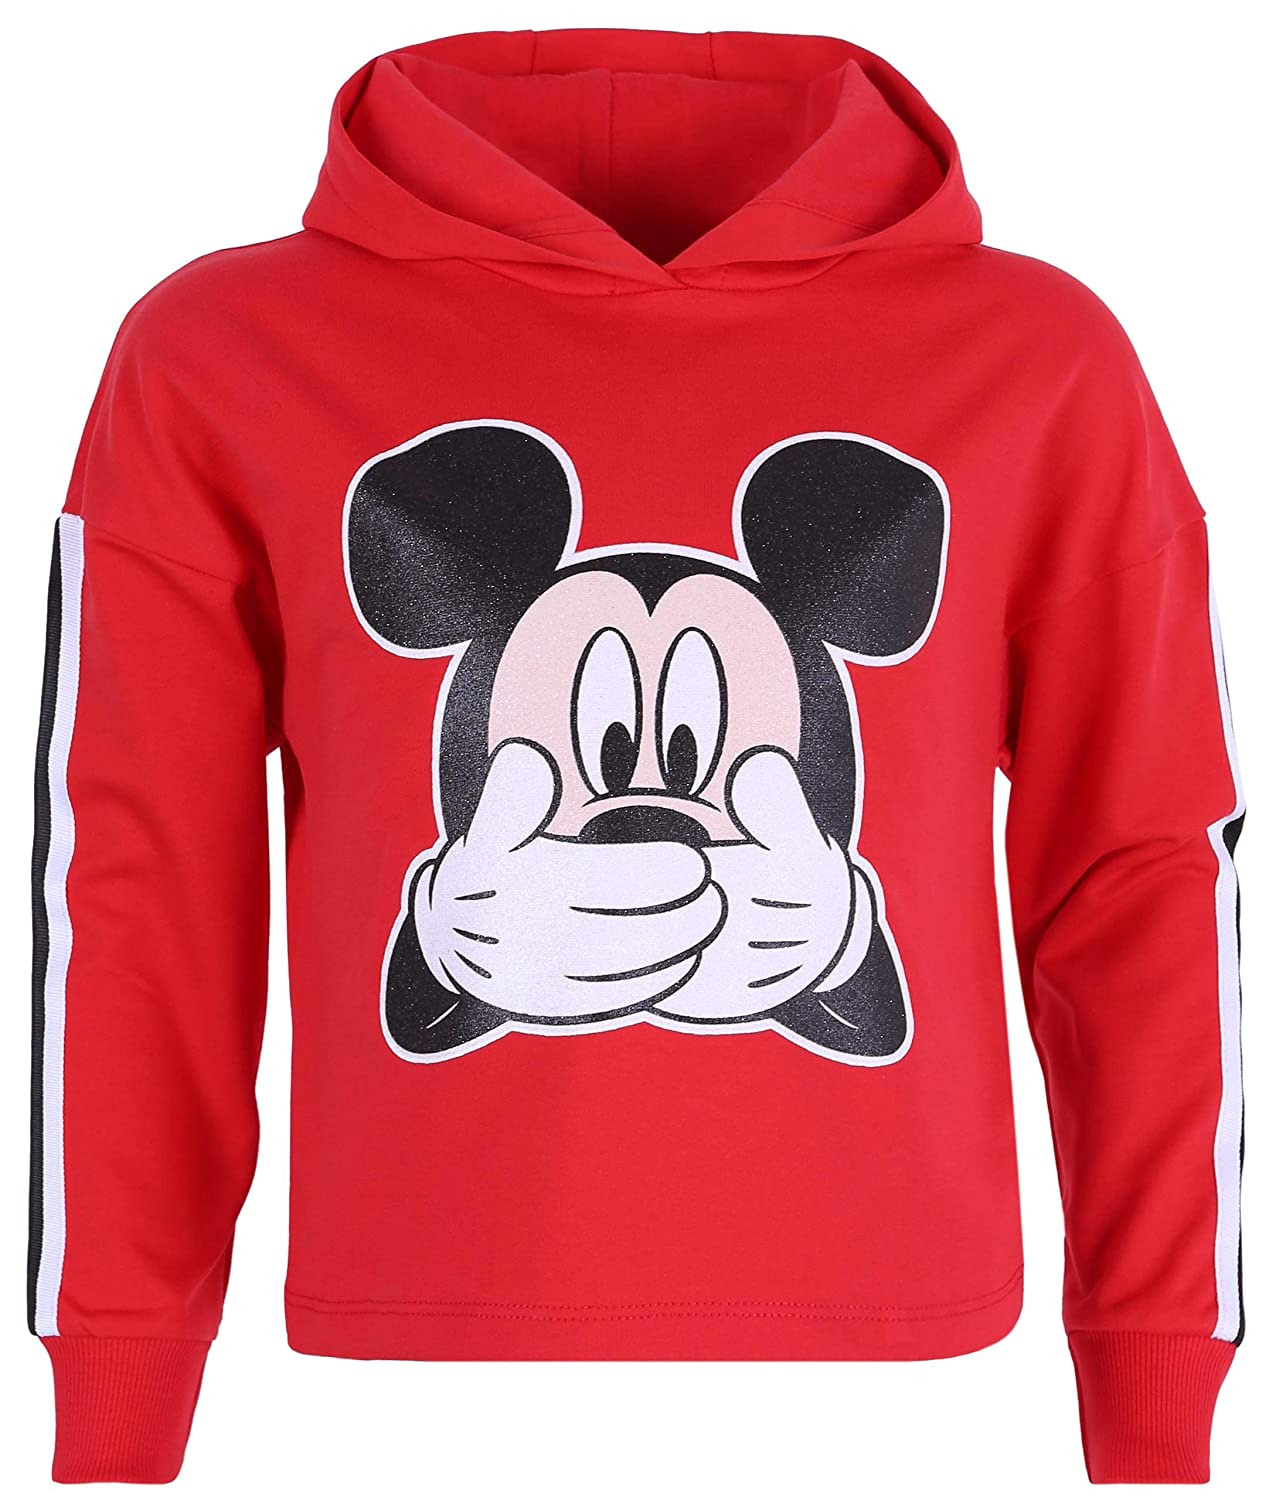 Long Sleeved Top Hooded Red Sweatshirt for Girls Mickey Mouse Disney